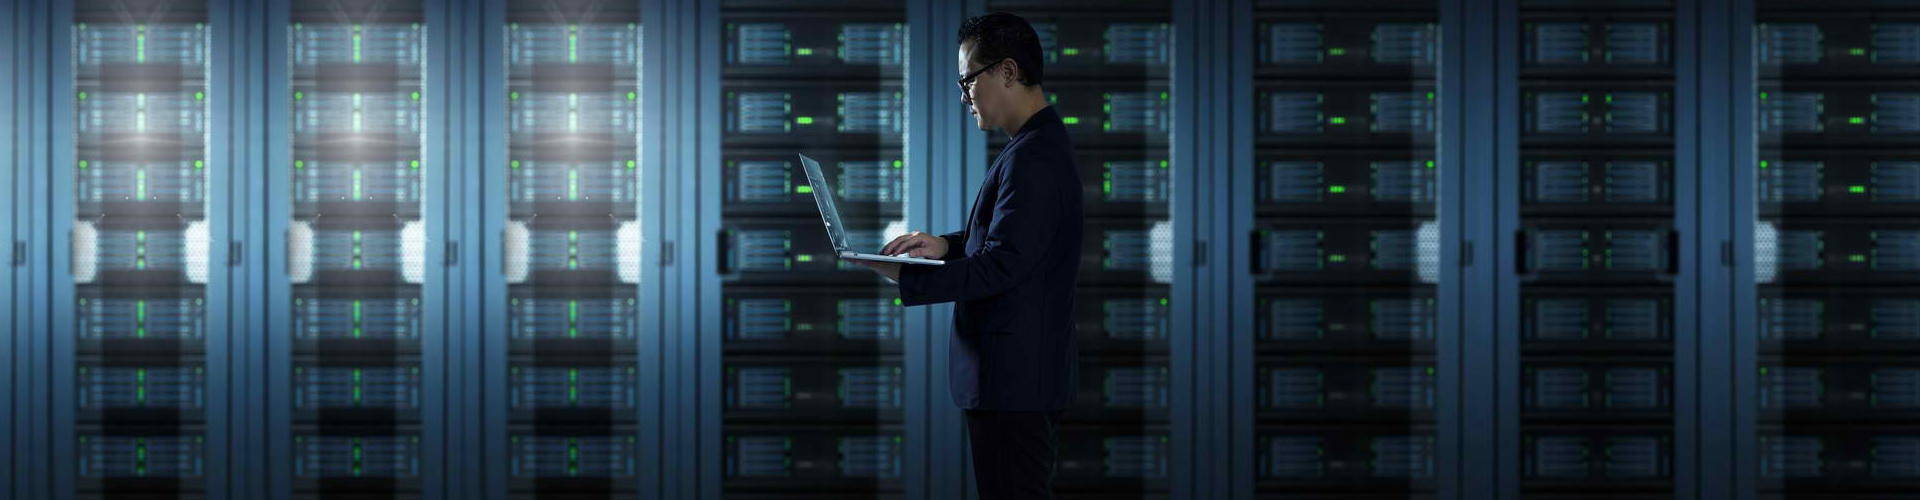 a network manager working